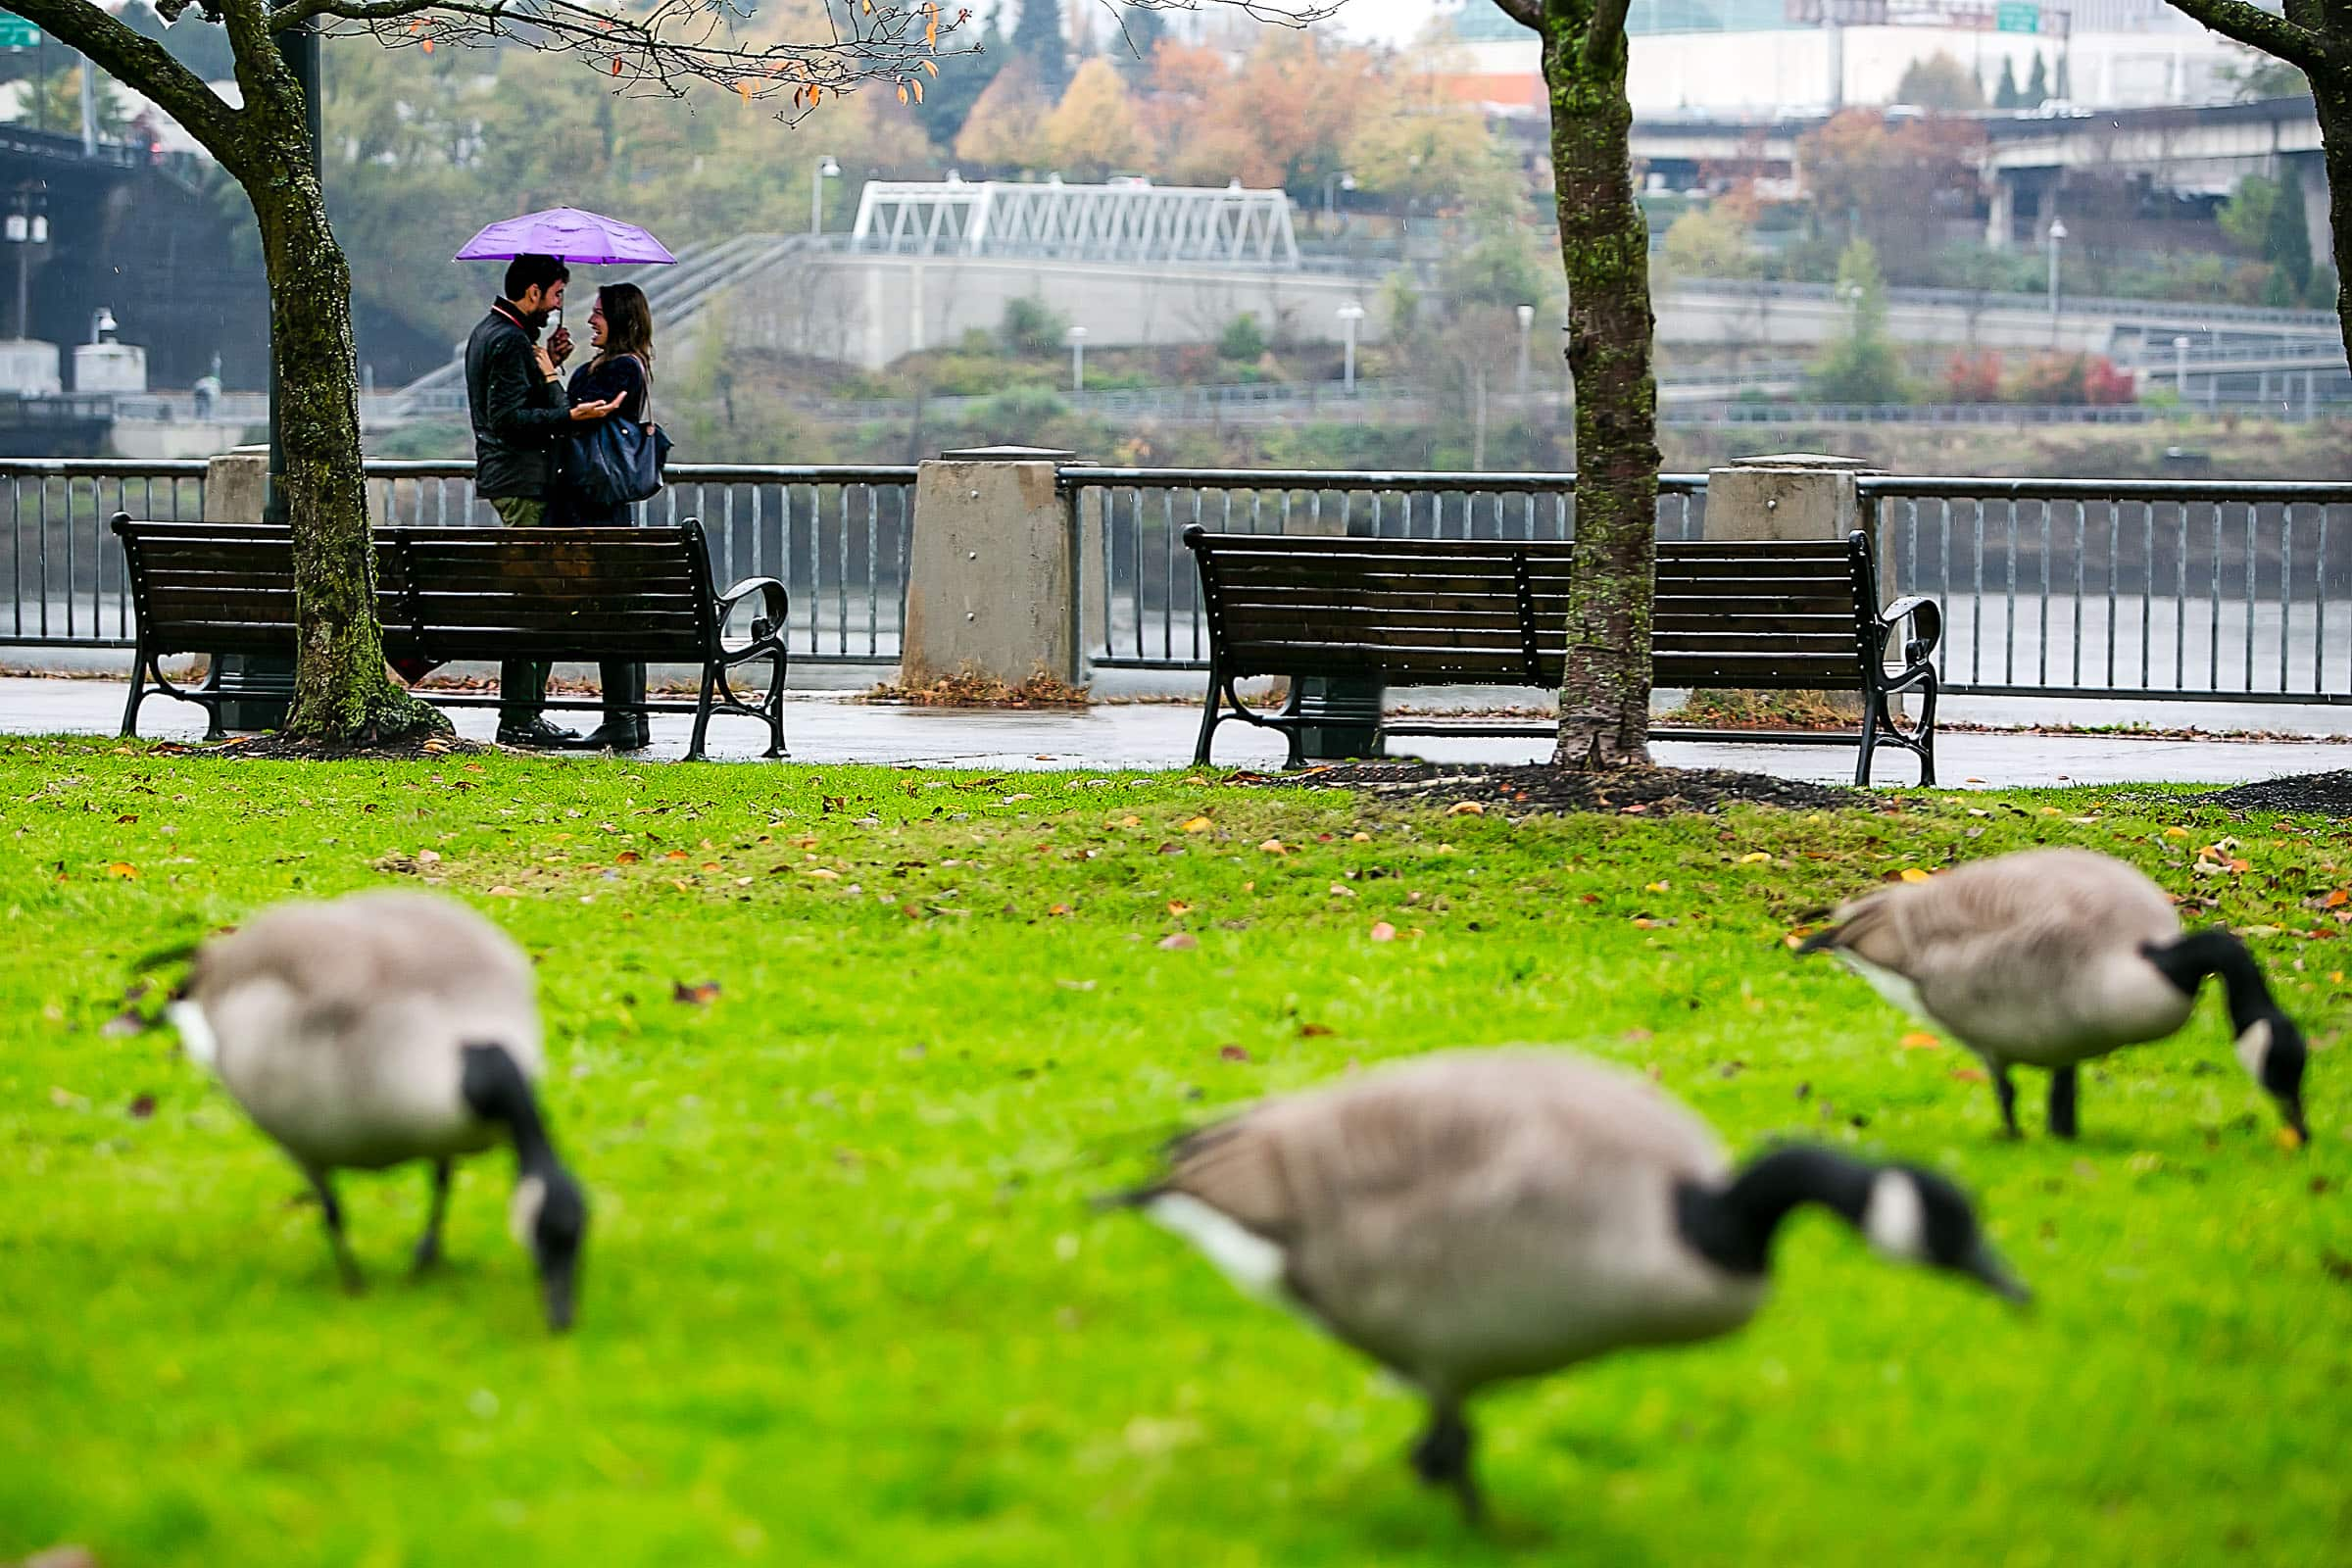 A beautiful Portland engagement proposal photo under an umbrella with geese in the foreground